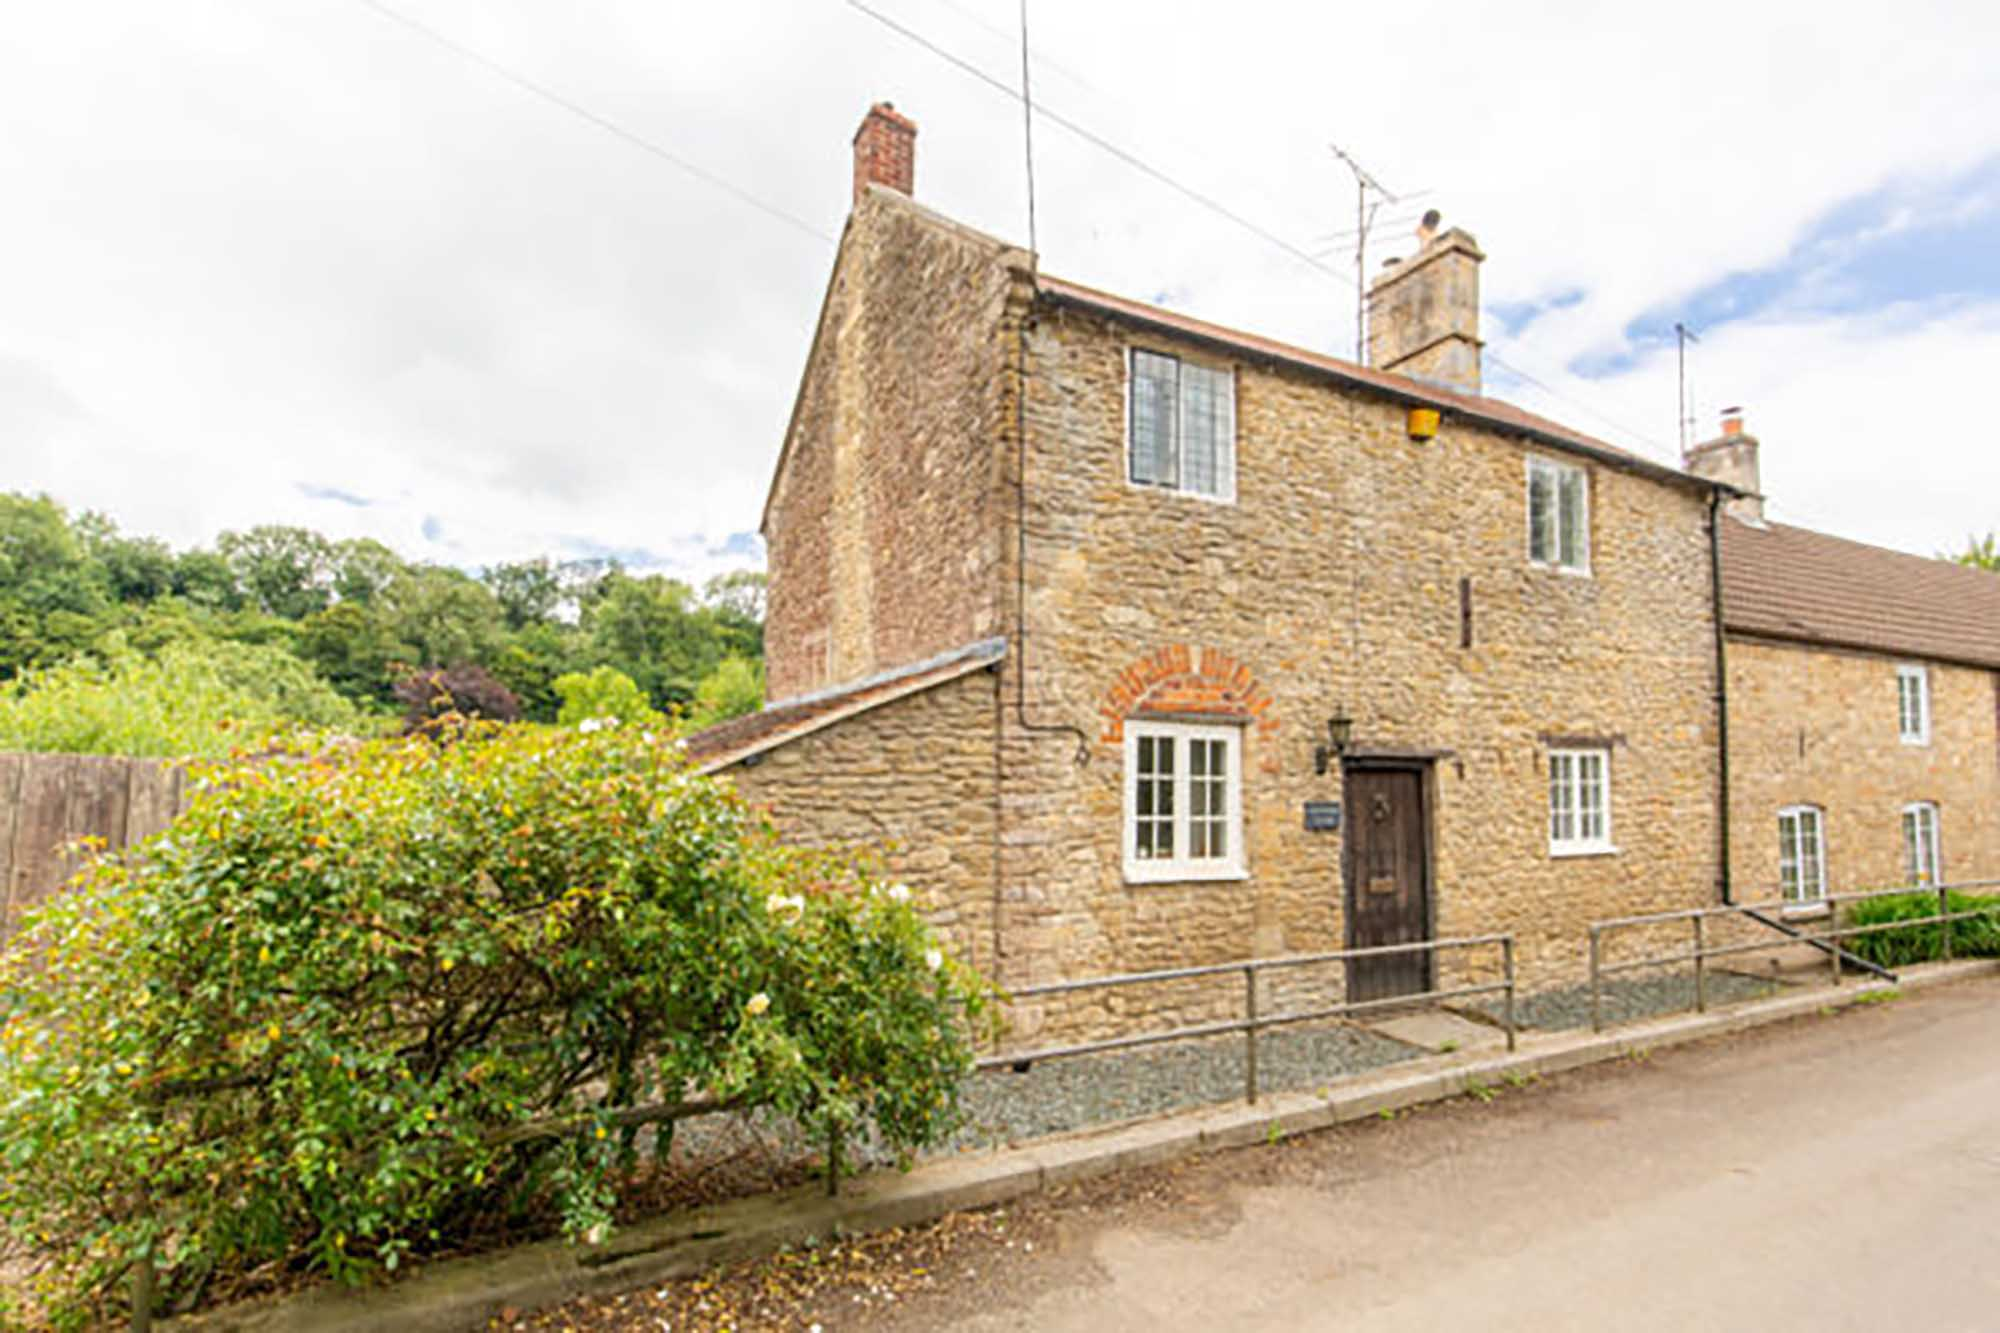 Batcombe nr Bruton, cottage and annexe